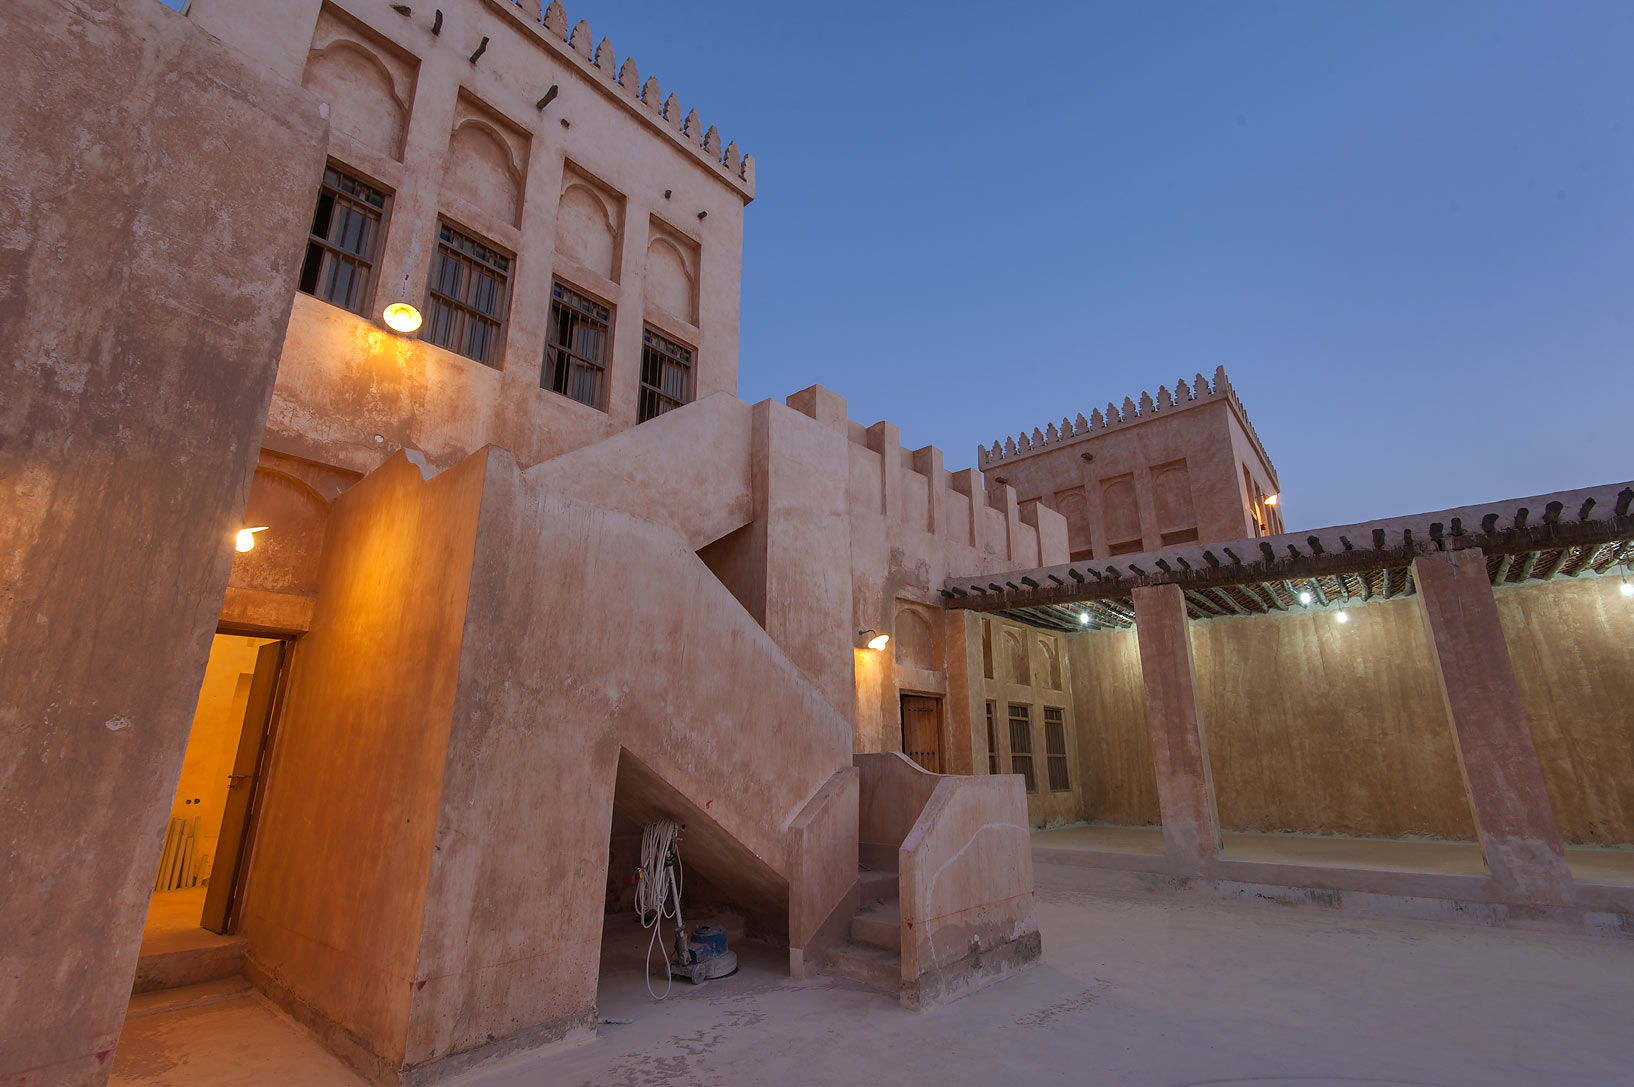 Some backyard in Al Wakra Heritage Village (Souq Waqif in Al Wakrah). Qatar